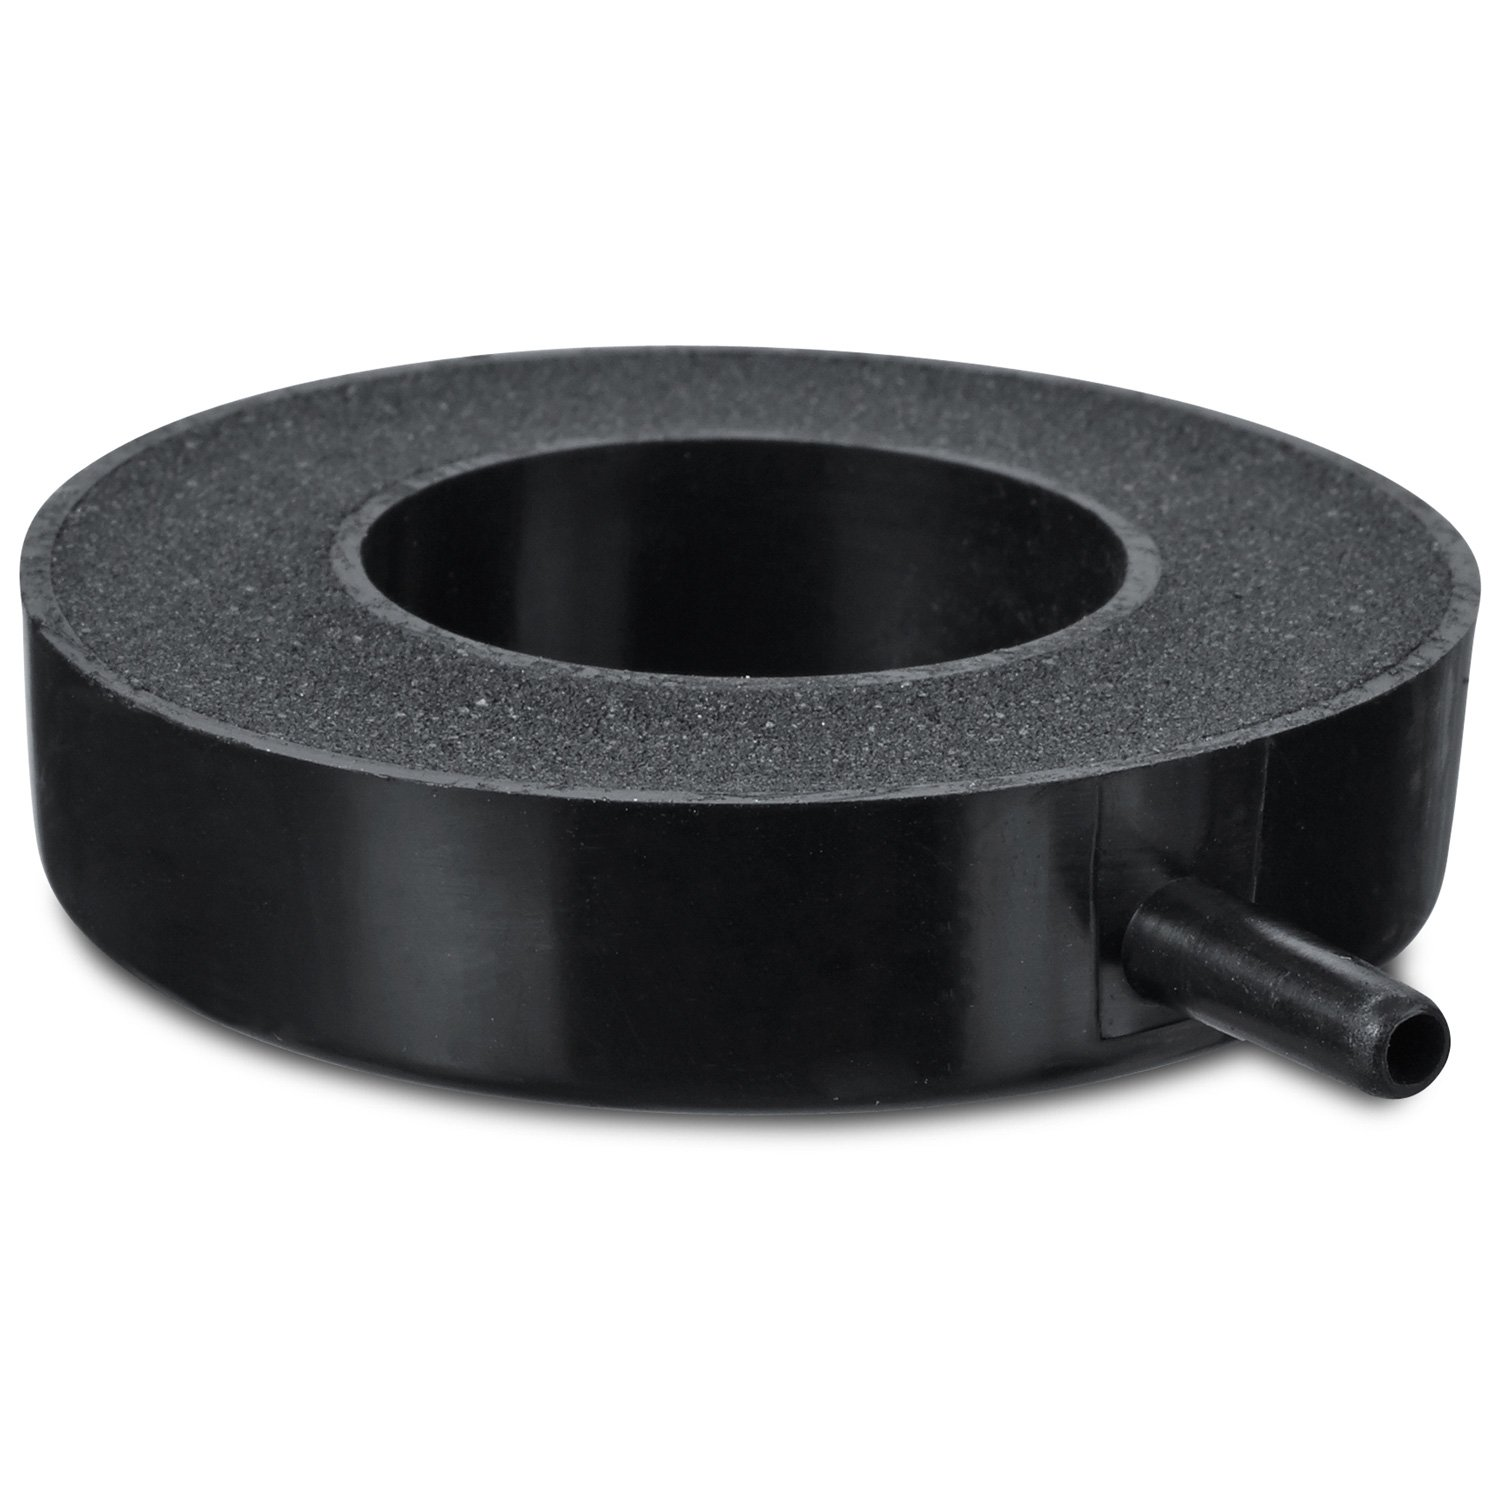 Petco Donut Bubbling Airstone